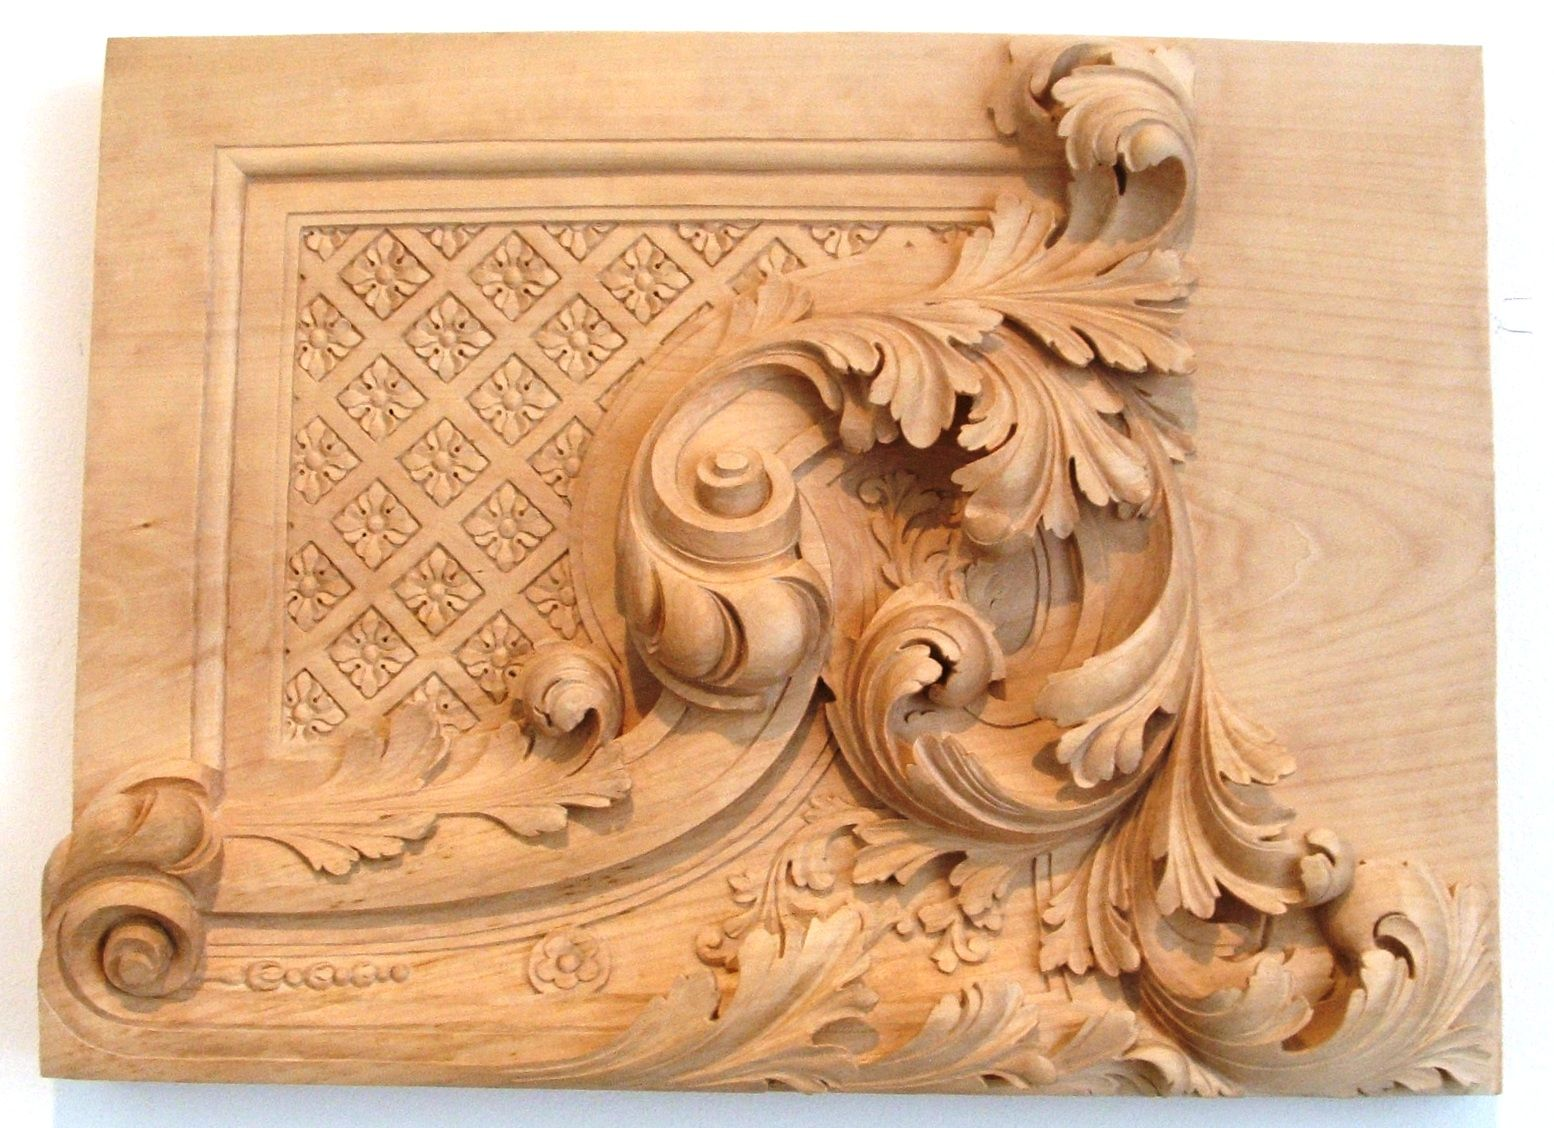 Carving wood as a hobby?